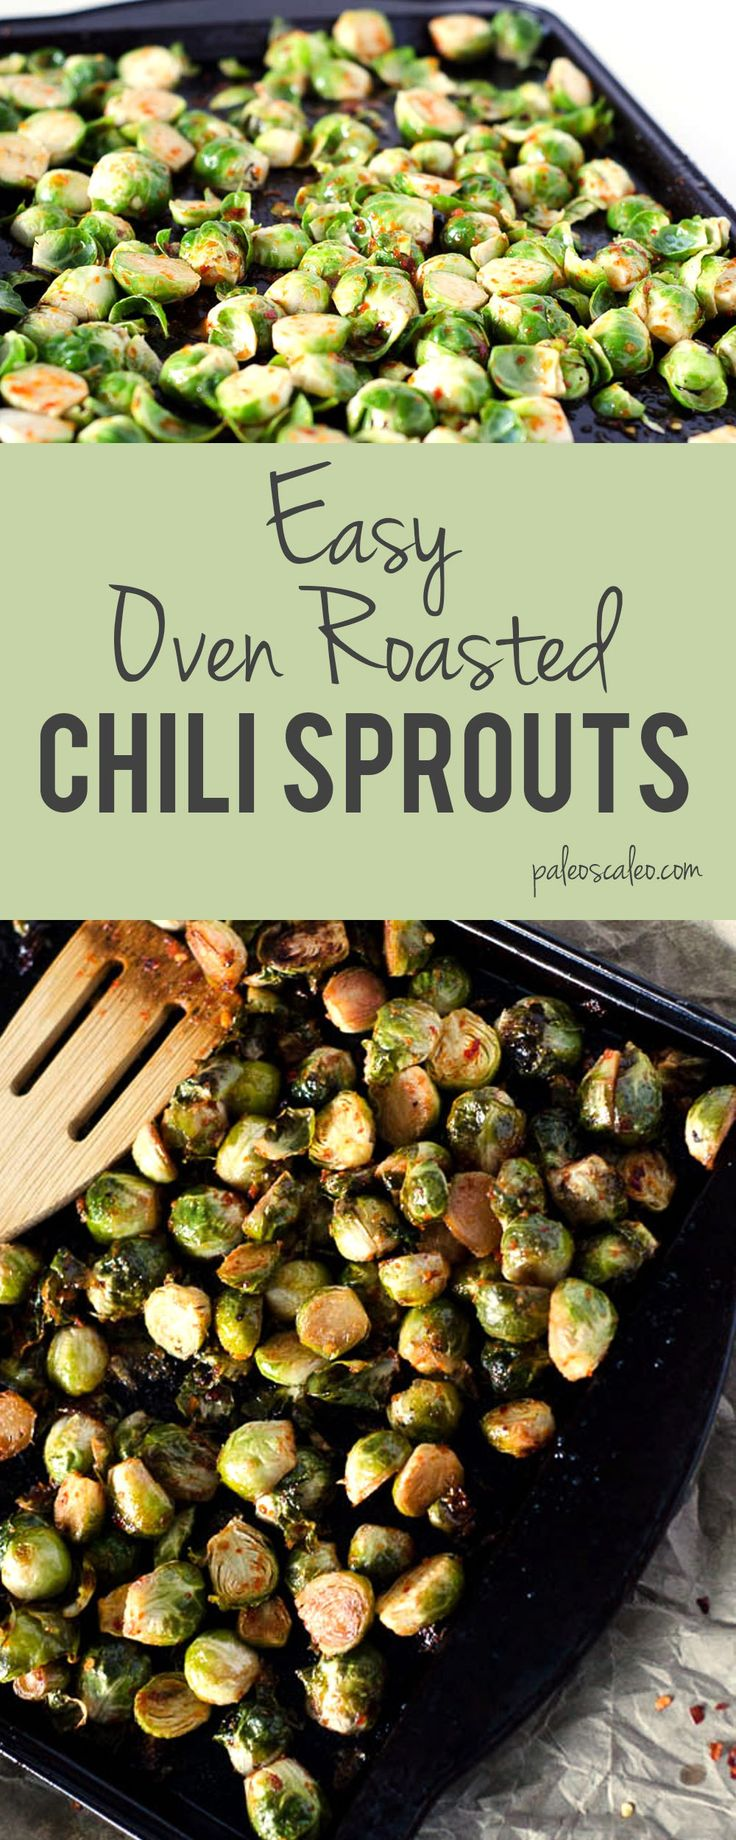 Hf ideas parrillas y asados - Chili Roasted Brussel Sprouts